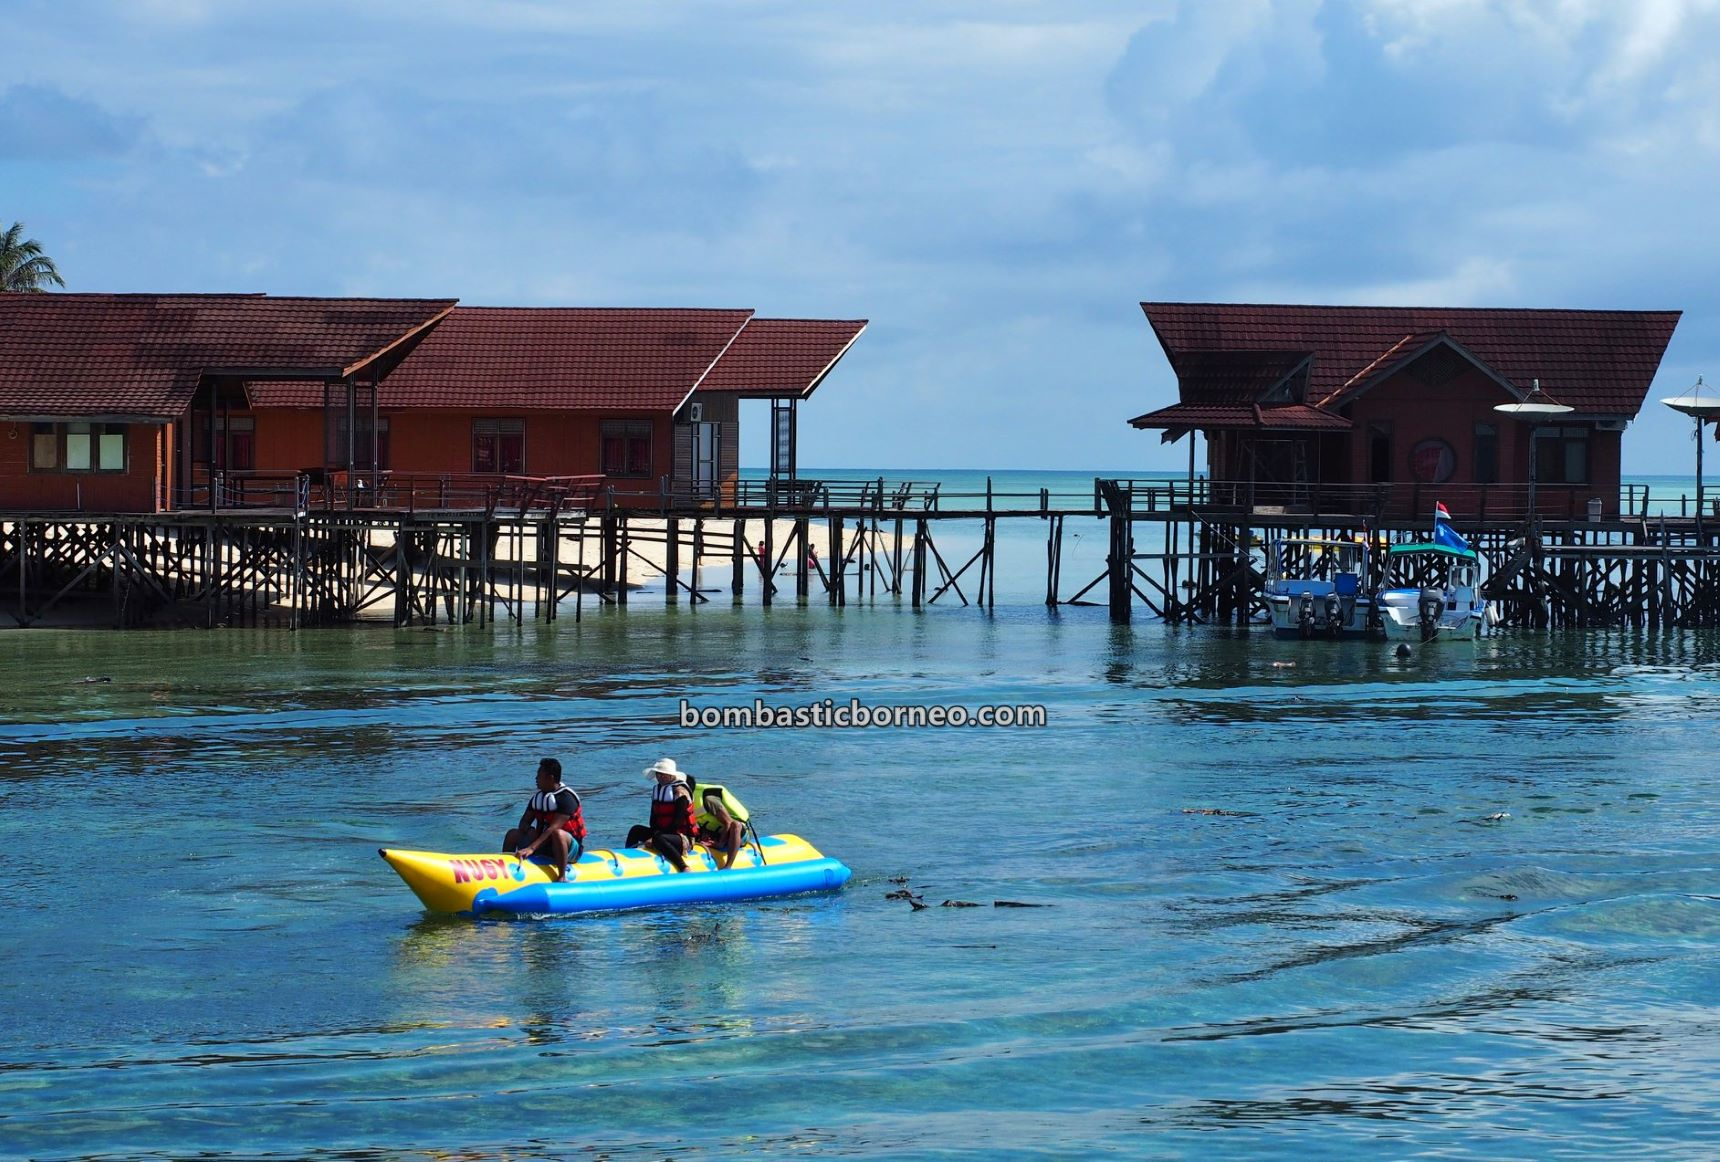 Derawan Archipelago, backpackers, Destination, nature, hidden paradise, holiday, vacation, East Kalimantan, Sulawesi Sea, Pariwisata, travel guide, Borneo, 探索婆罗洲游踪, 印尼东加里曼丹, 达拉湾岛旅游景点,